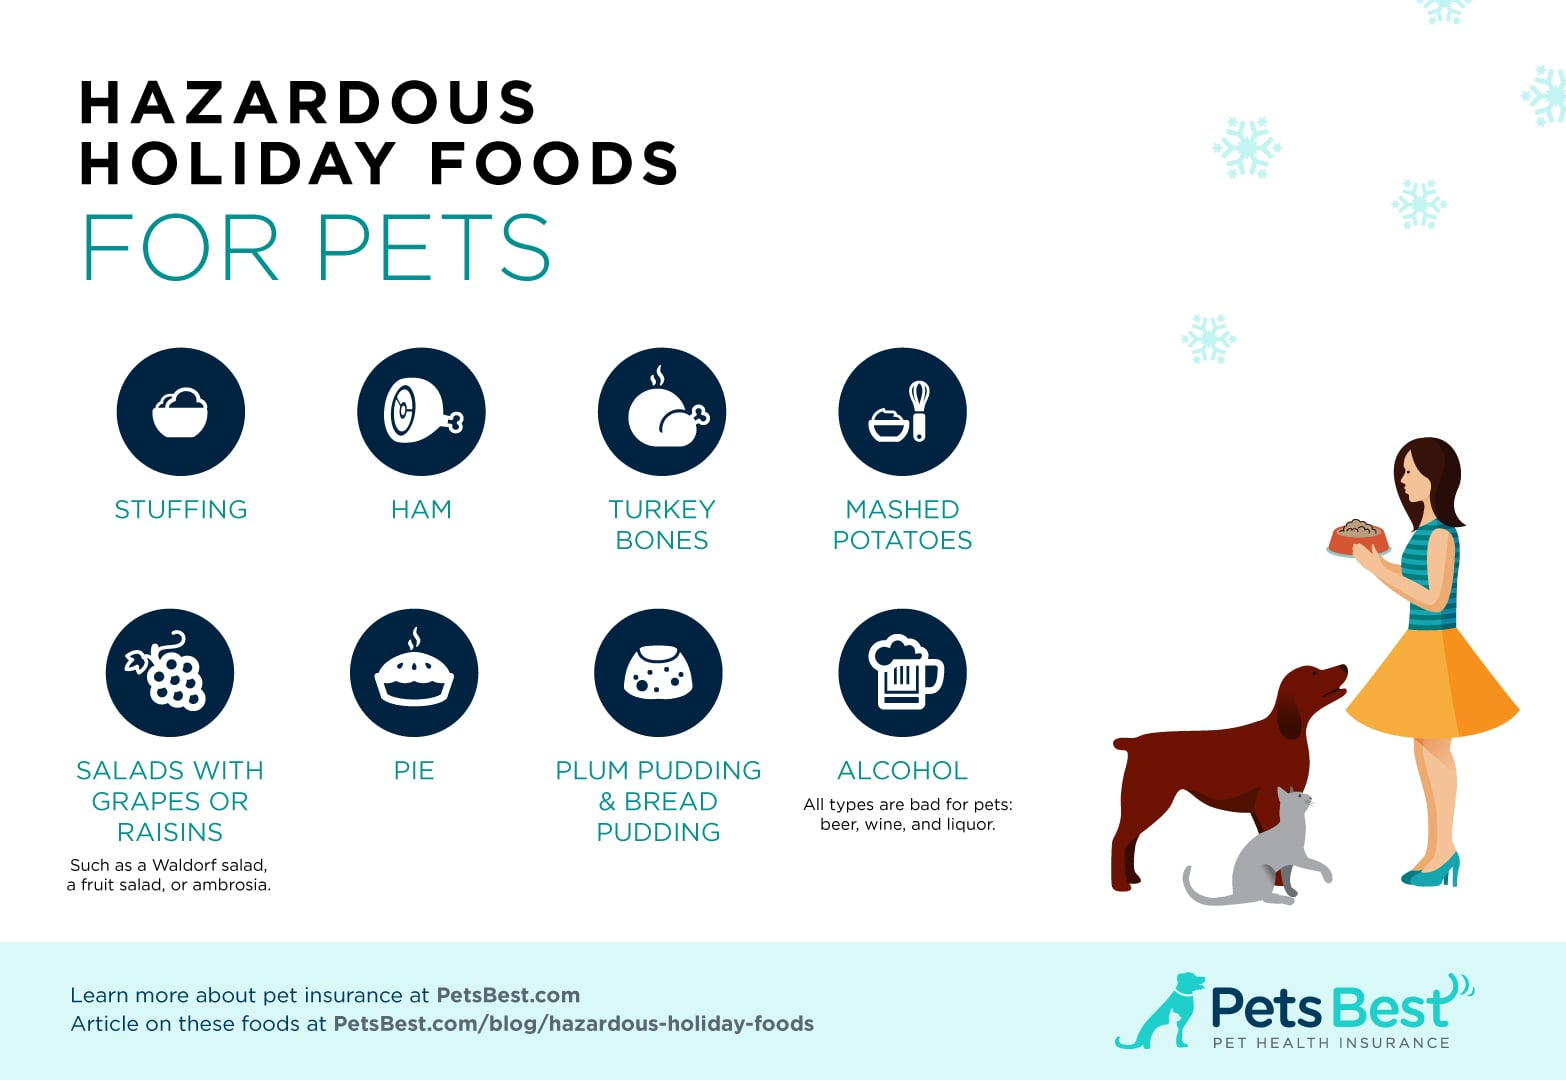 Holiday Christmas foods that are bad for dogs and cats.